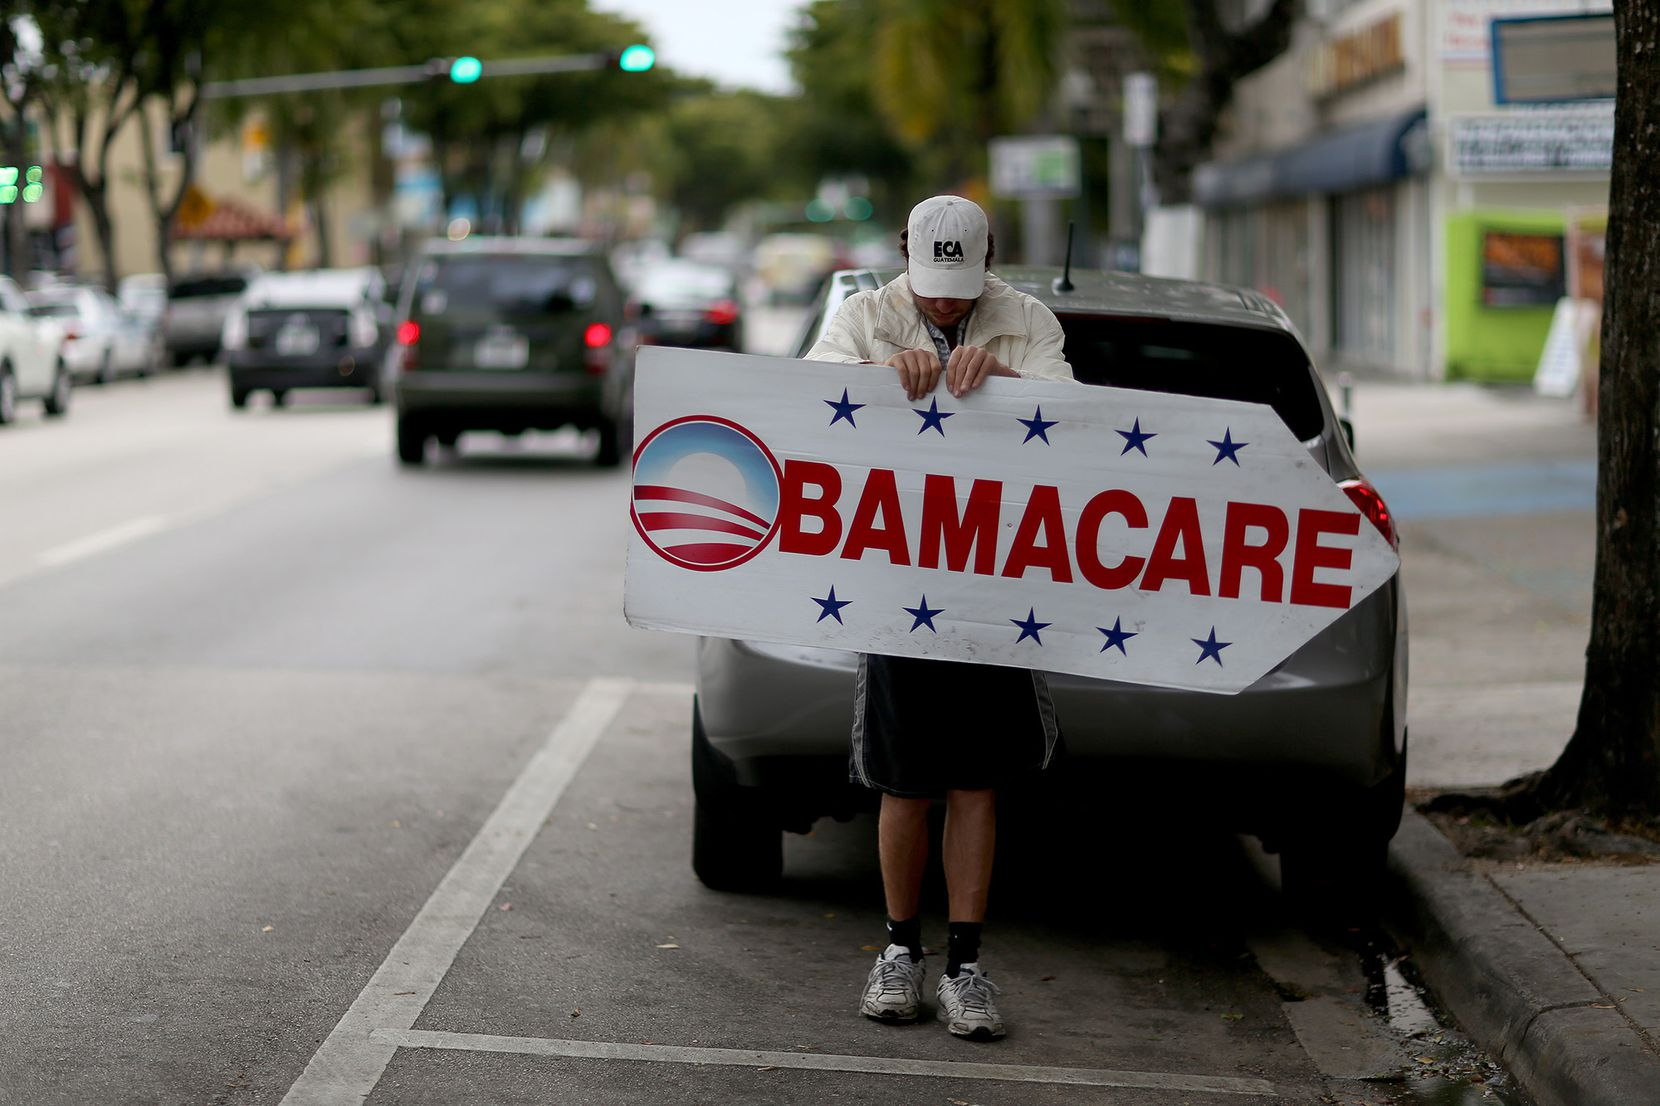 A Miami insurance company advertises to can sign people up for the Affordable Care Act, also known as Obamacare, in 2015. (Joe Raedle/Getty Images/TNS)